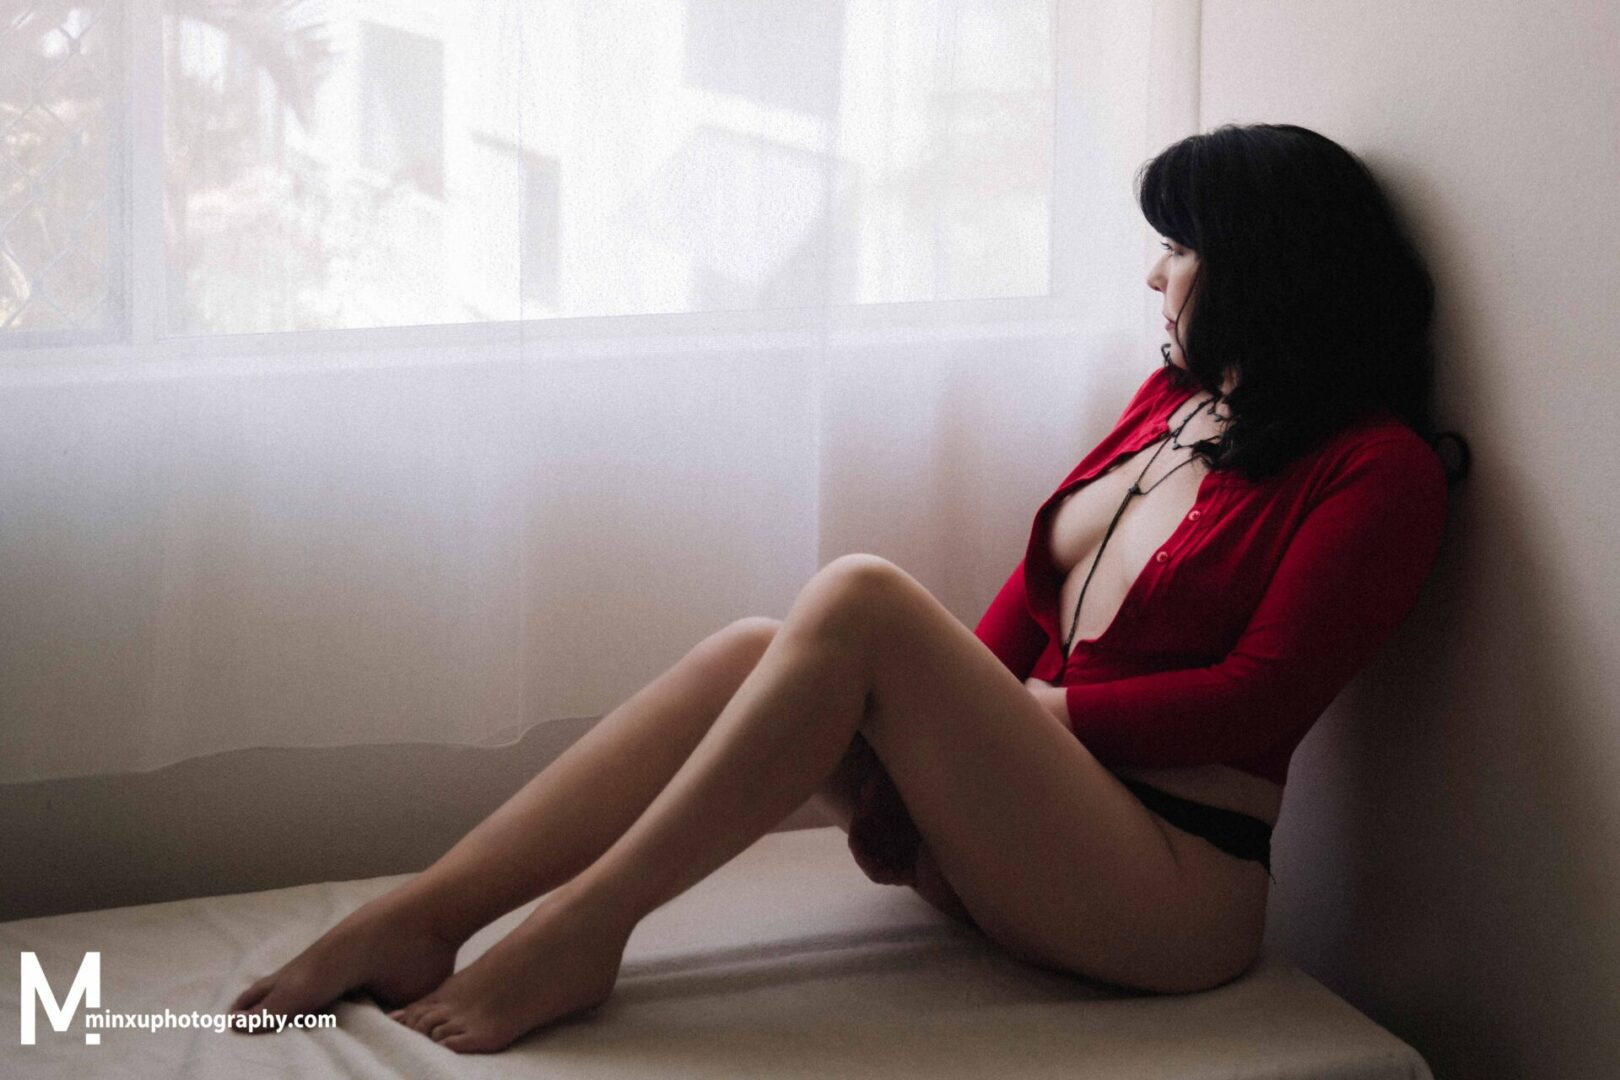 A Boudoir Shoot - Is It Worth The Investment?